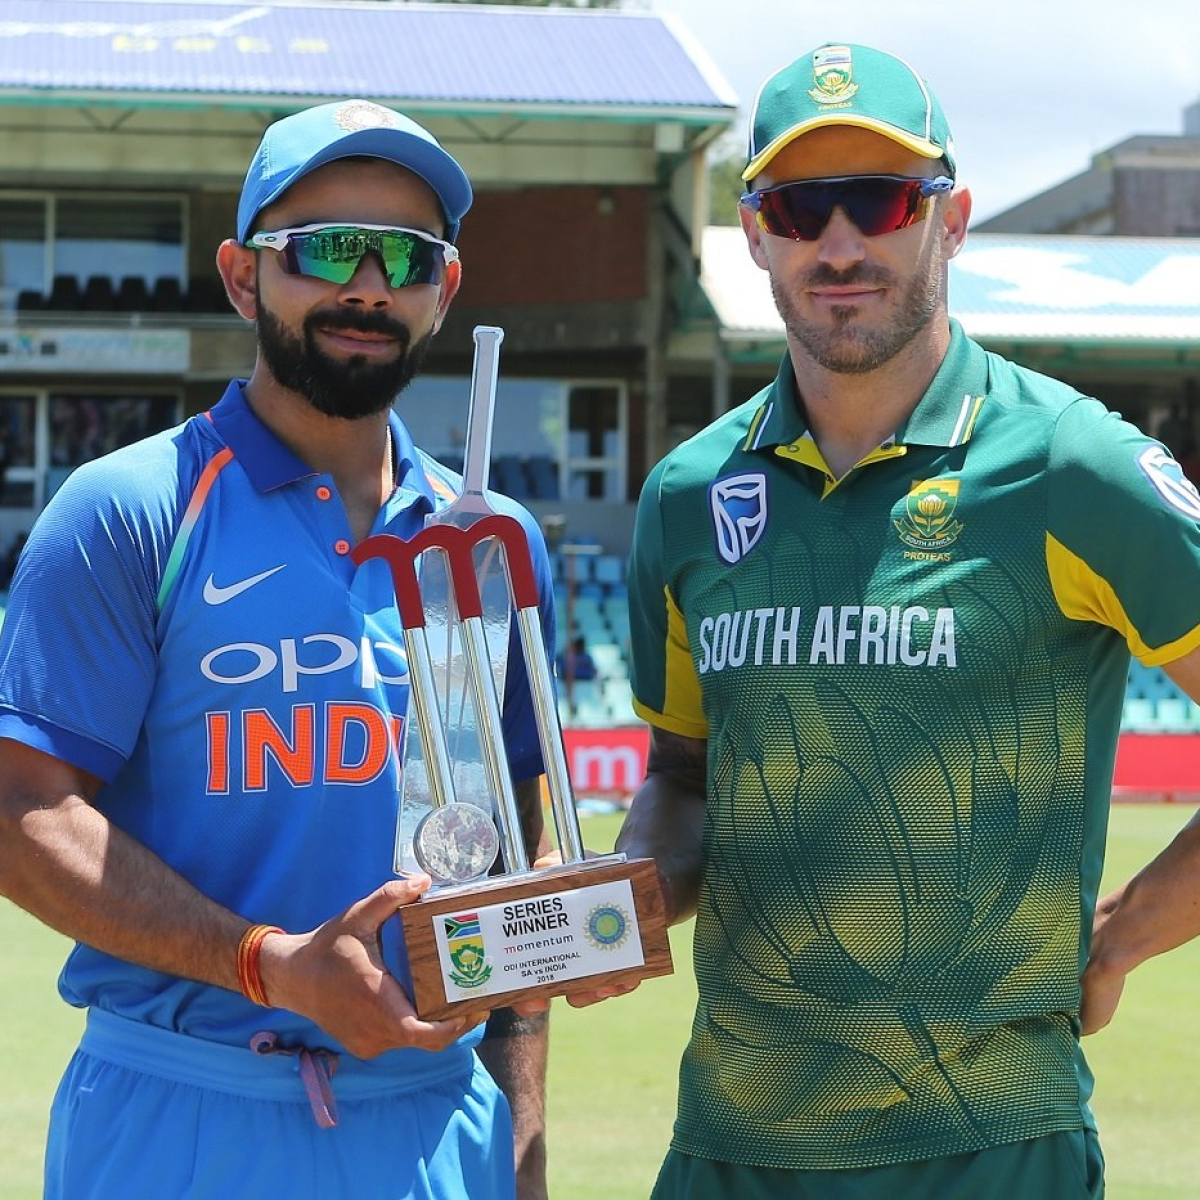 Asia XI vs World XI: Squads announced, Virat Kohli and Faf du Plessis to lead teams